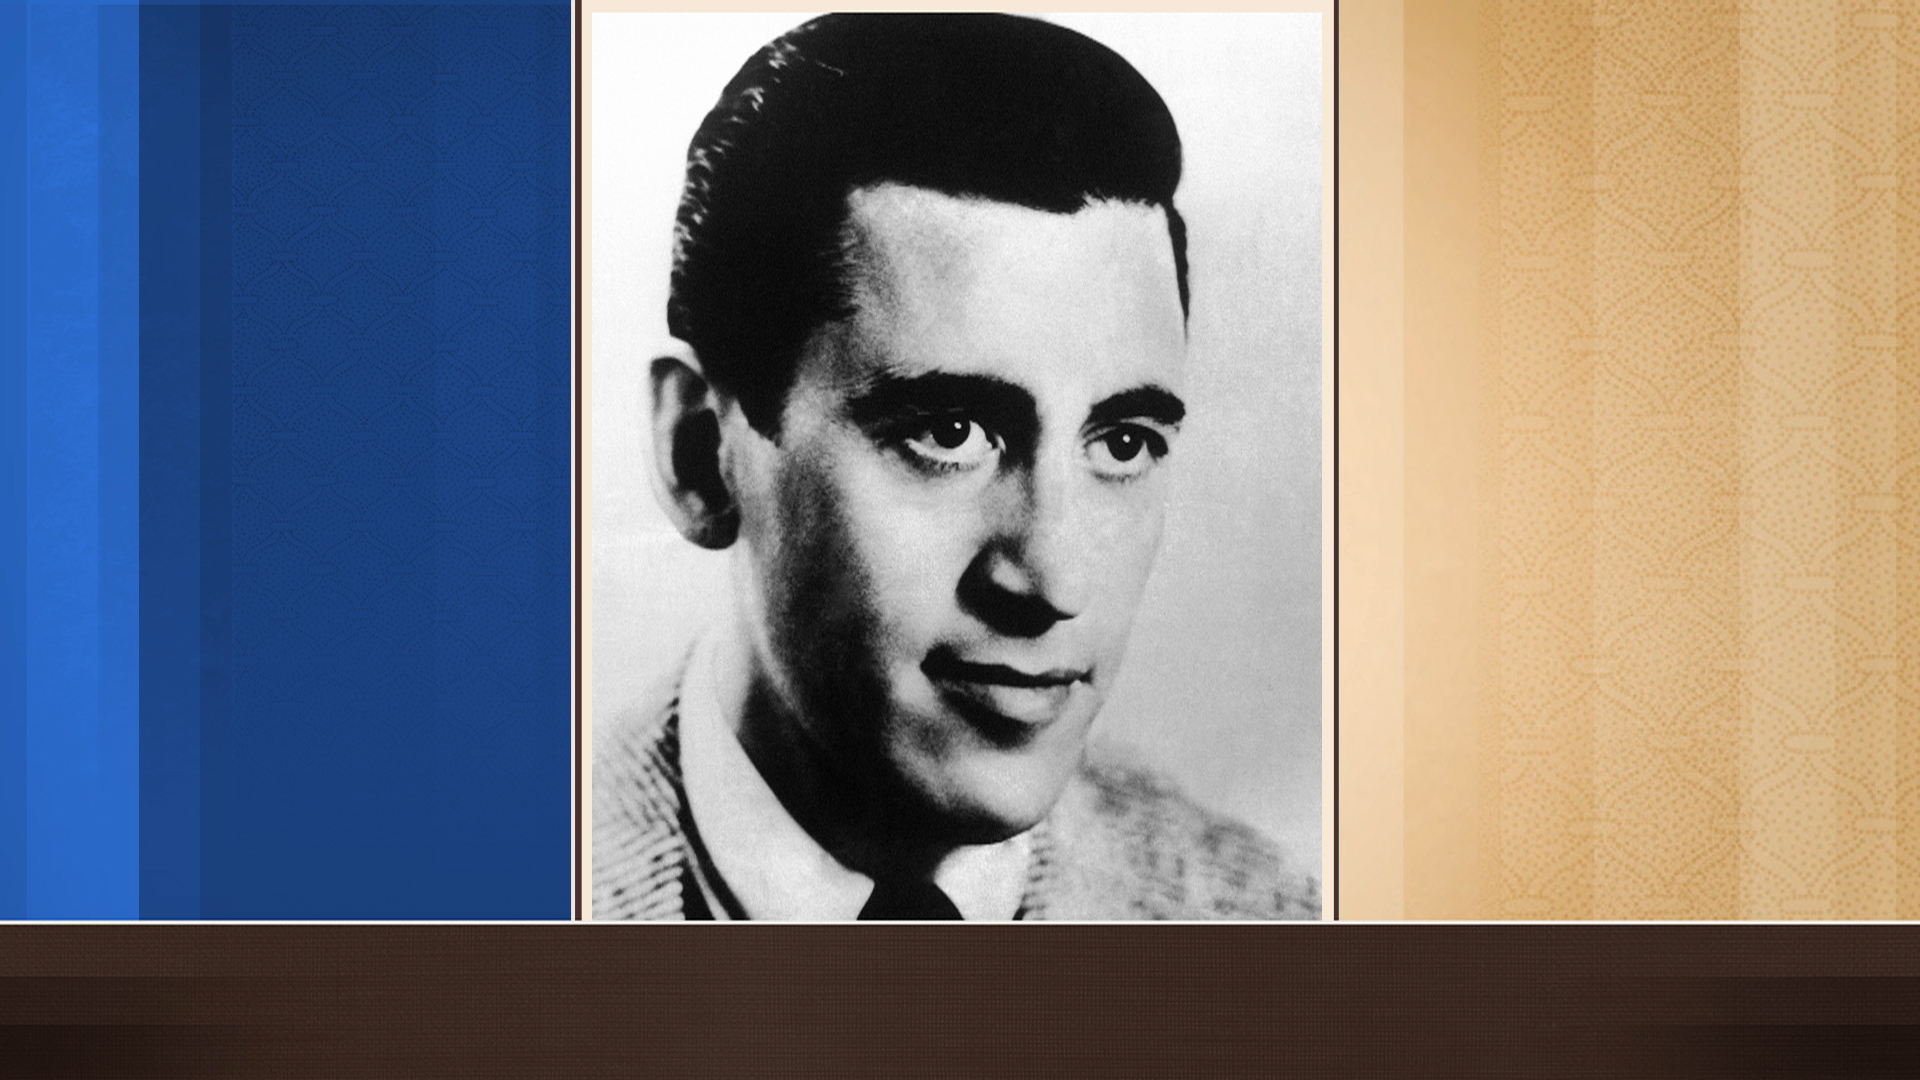 THIS WOULD DRIVE HIM CRAZY: A PHONY ORAL HISTORY OF J.D. SALINGER